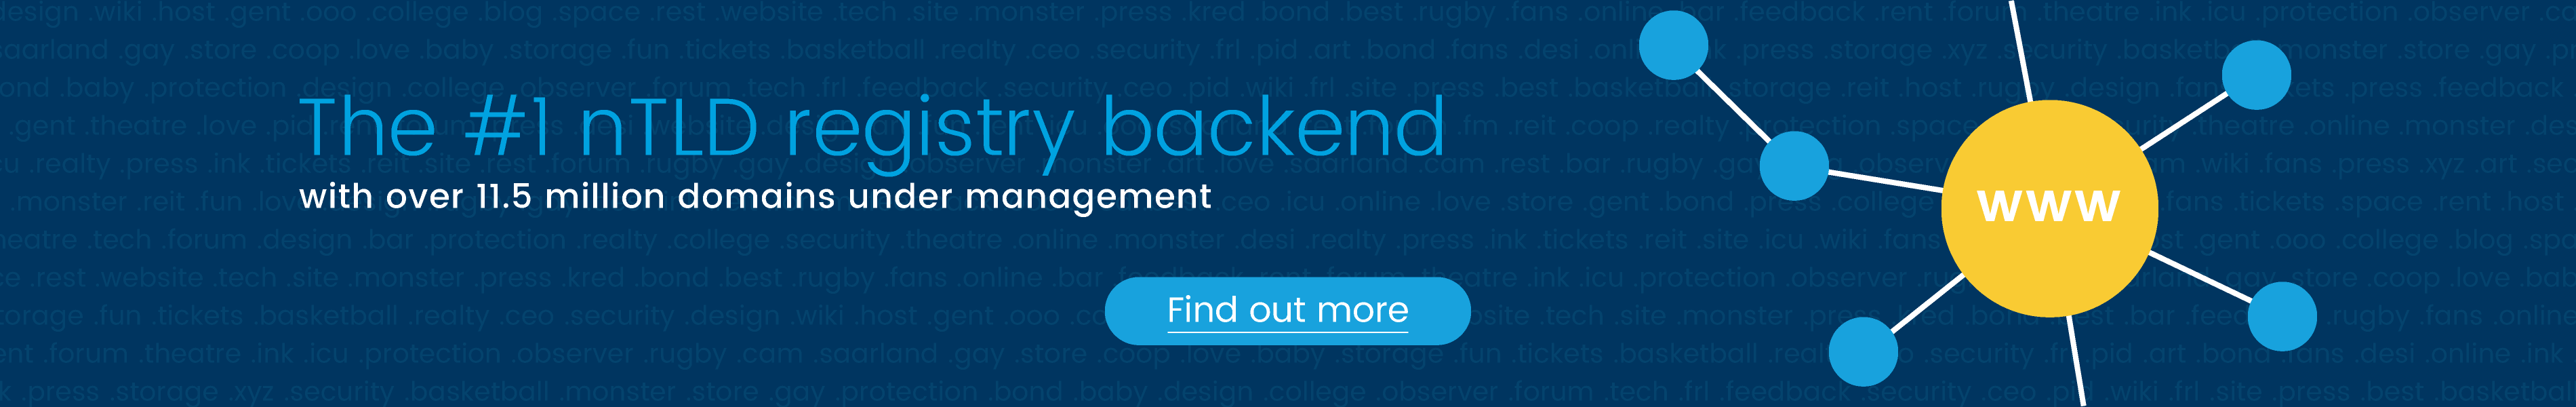 The #1 gTLD registry backend with over 11.5 million domains under management